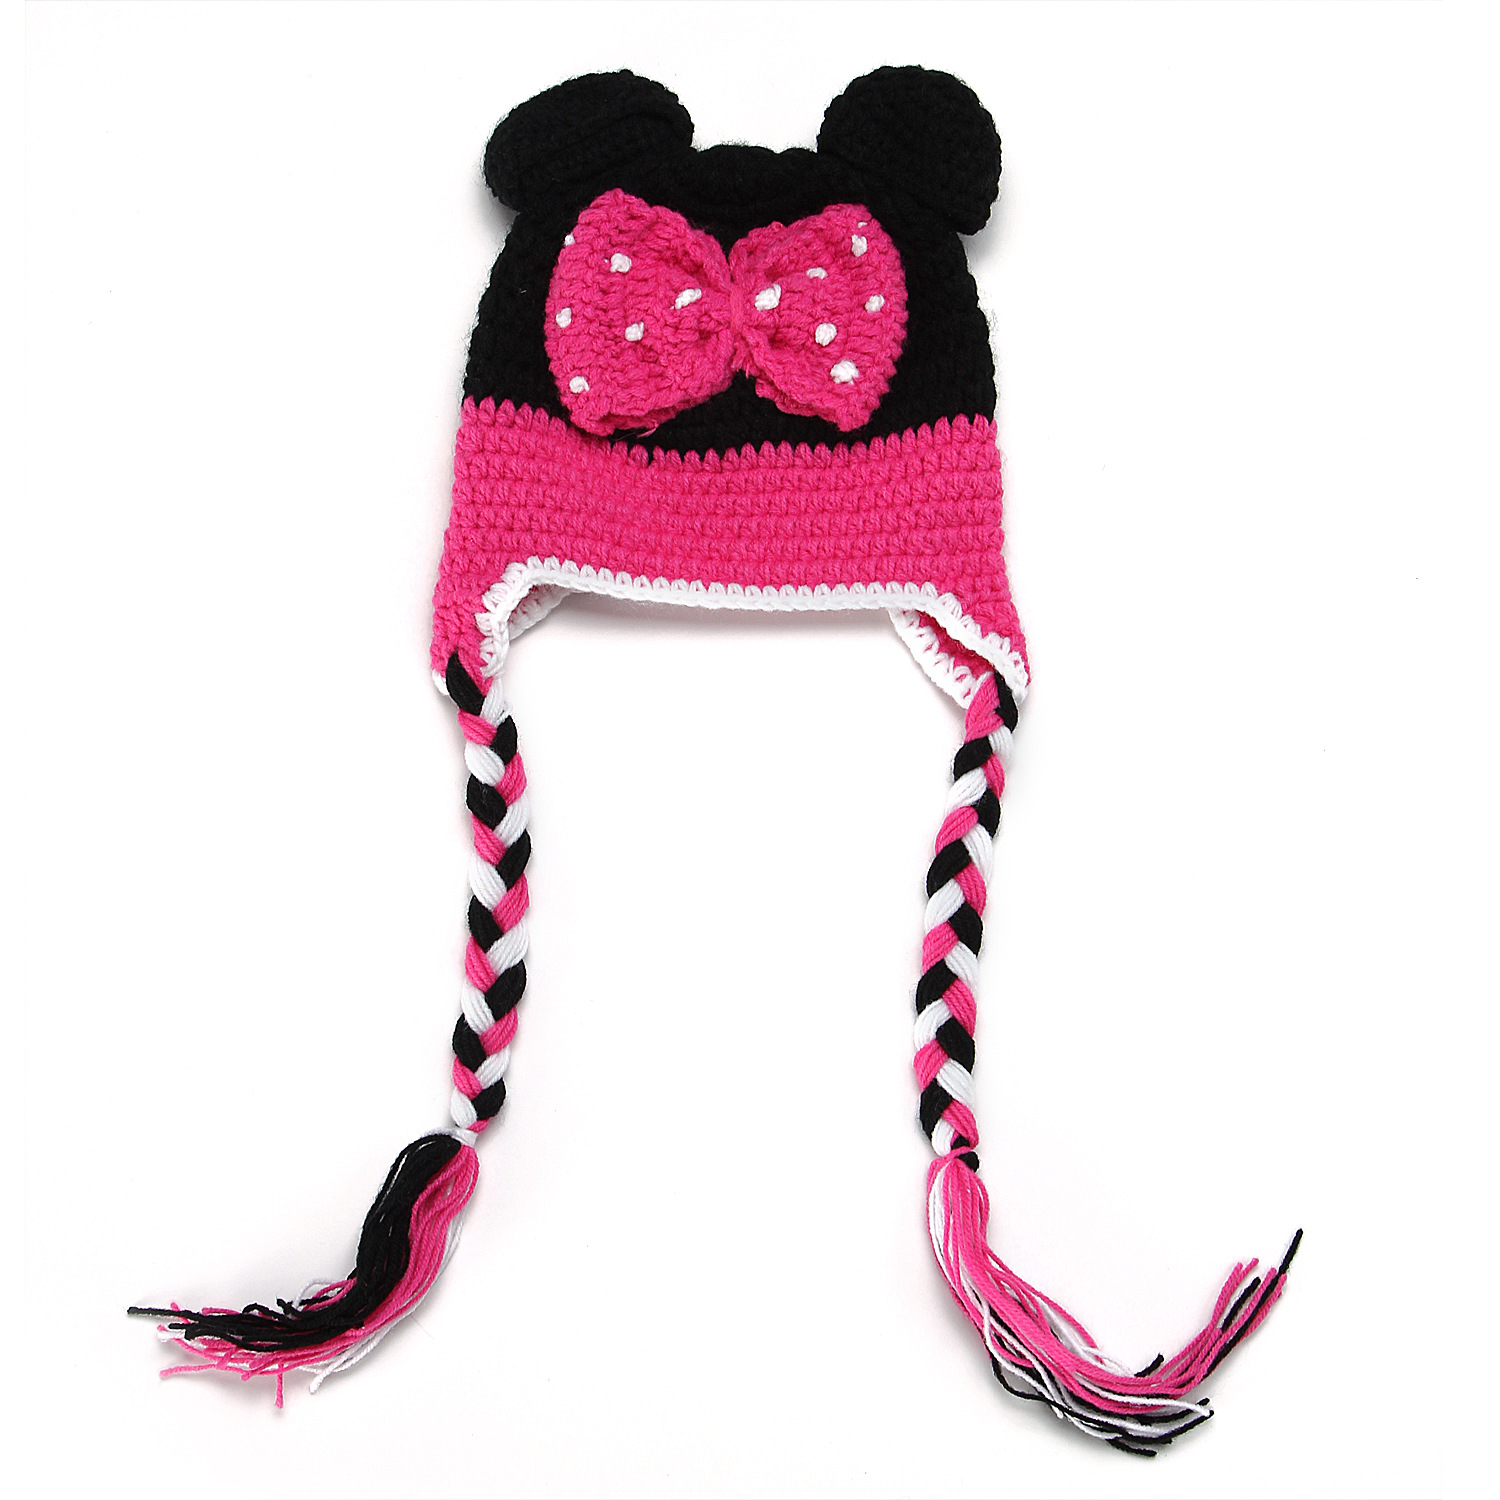 2015 Top Fashion Baby Knit Hat Cute Style Hand Woven Hats Mickey Bow Cap Supplies Accessories Handmade Newborn Photography Props(China (Mainland))